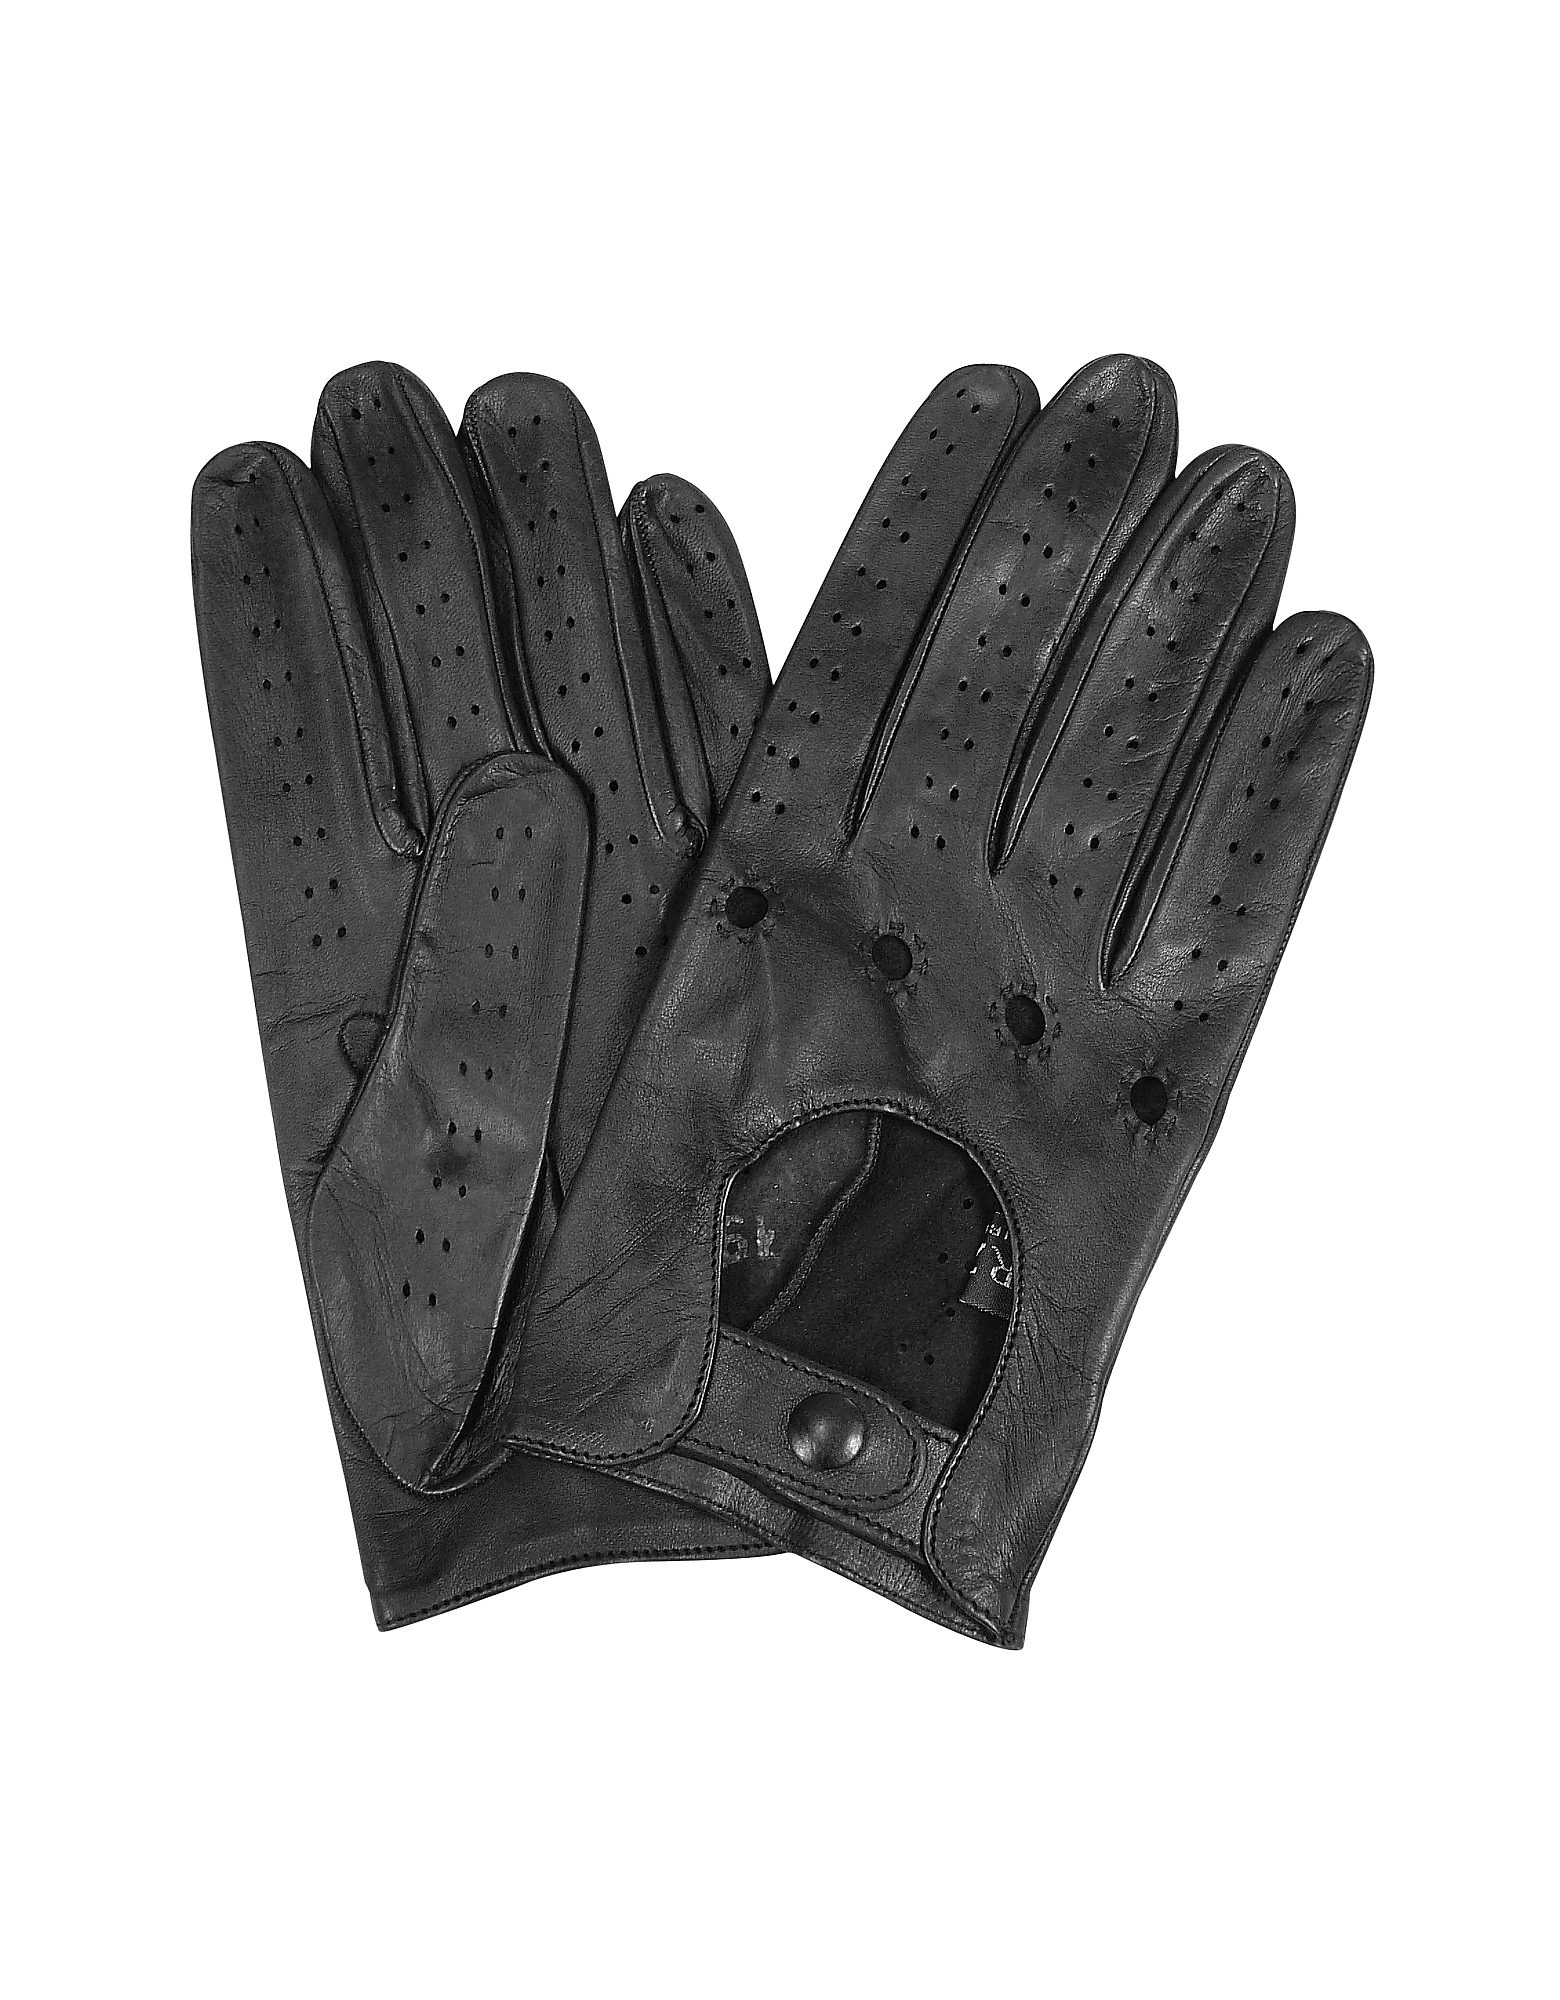 Forzieri Men's Gloves, Men's Black Italian Leather Driving Gloves